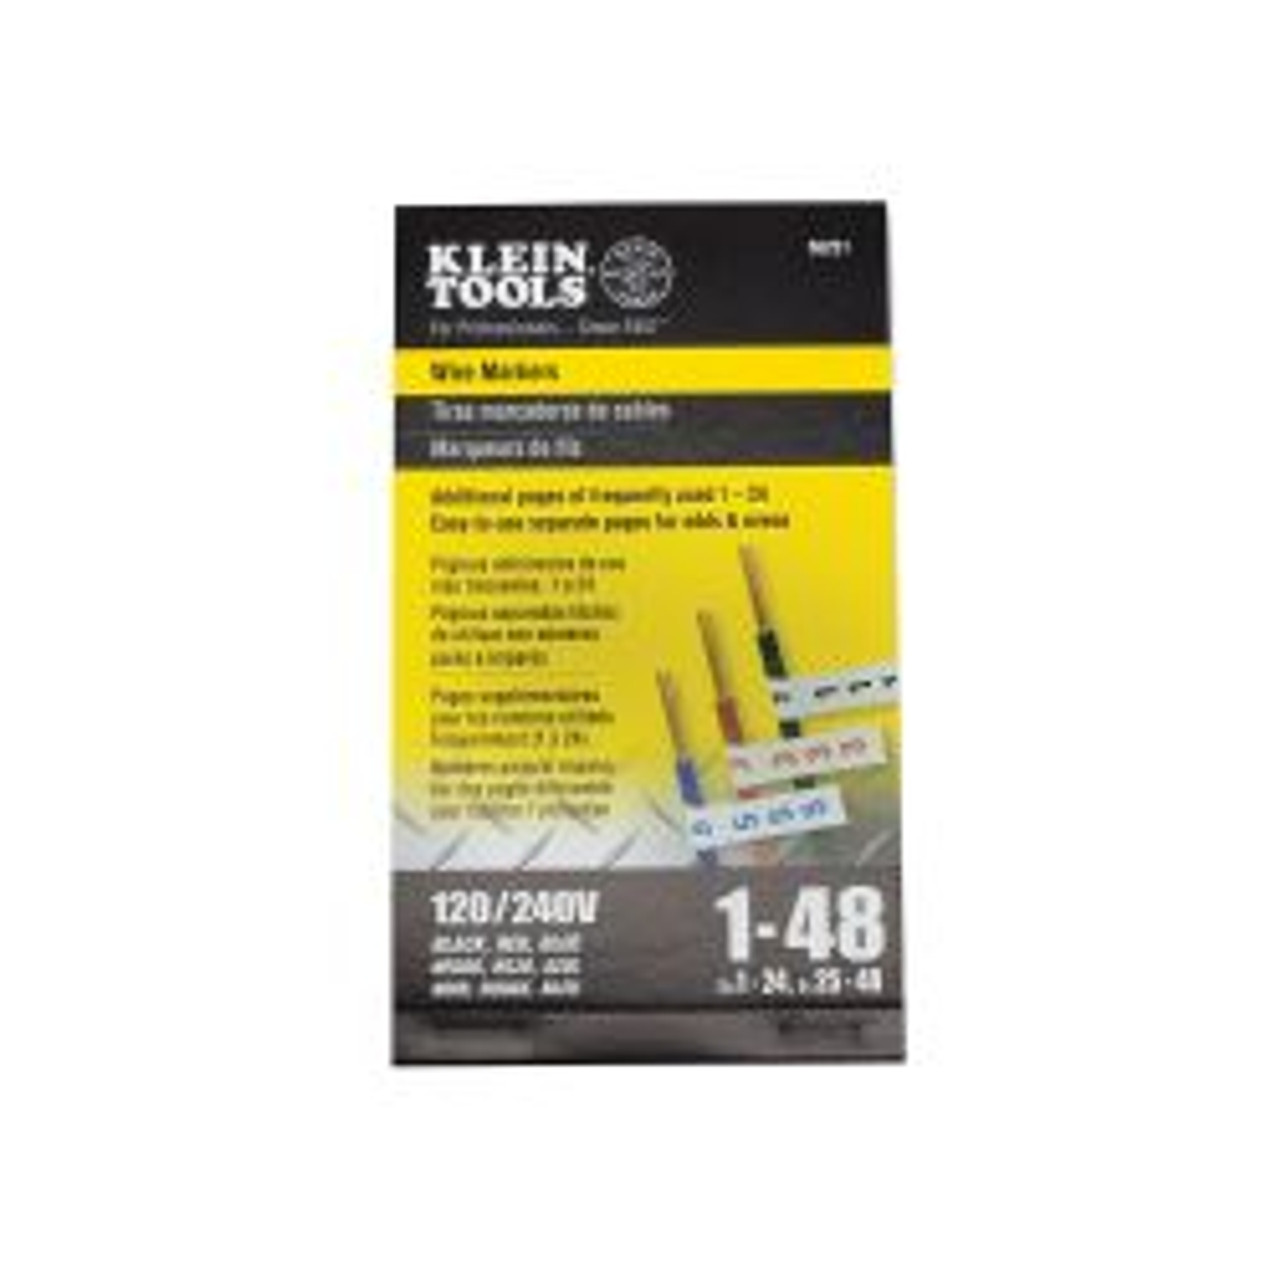 Klein 56251 Wire Markers-120/240V 3 Phase 1-48